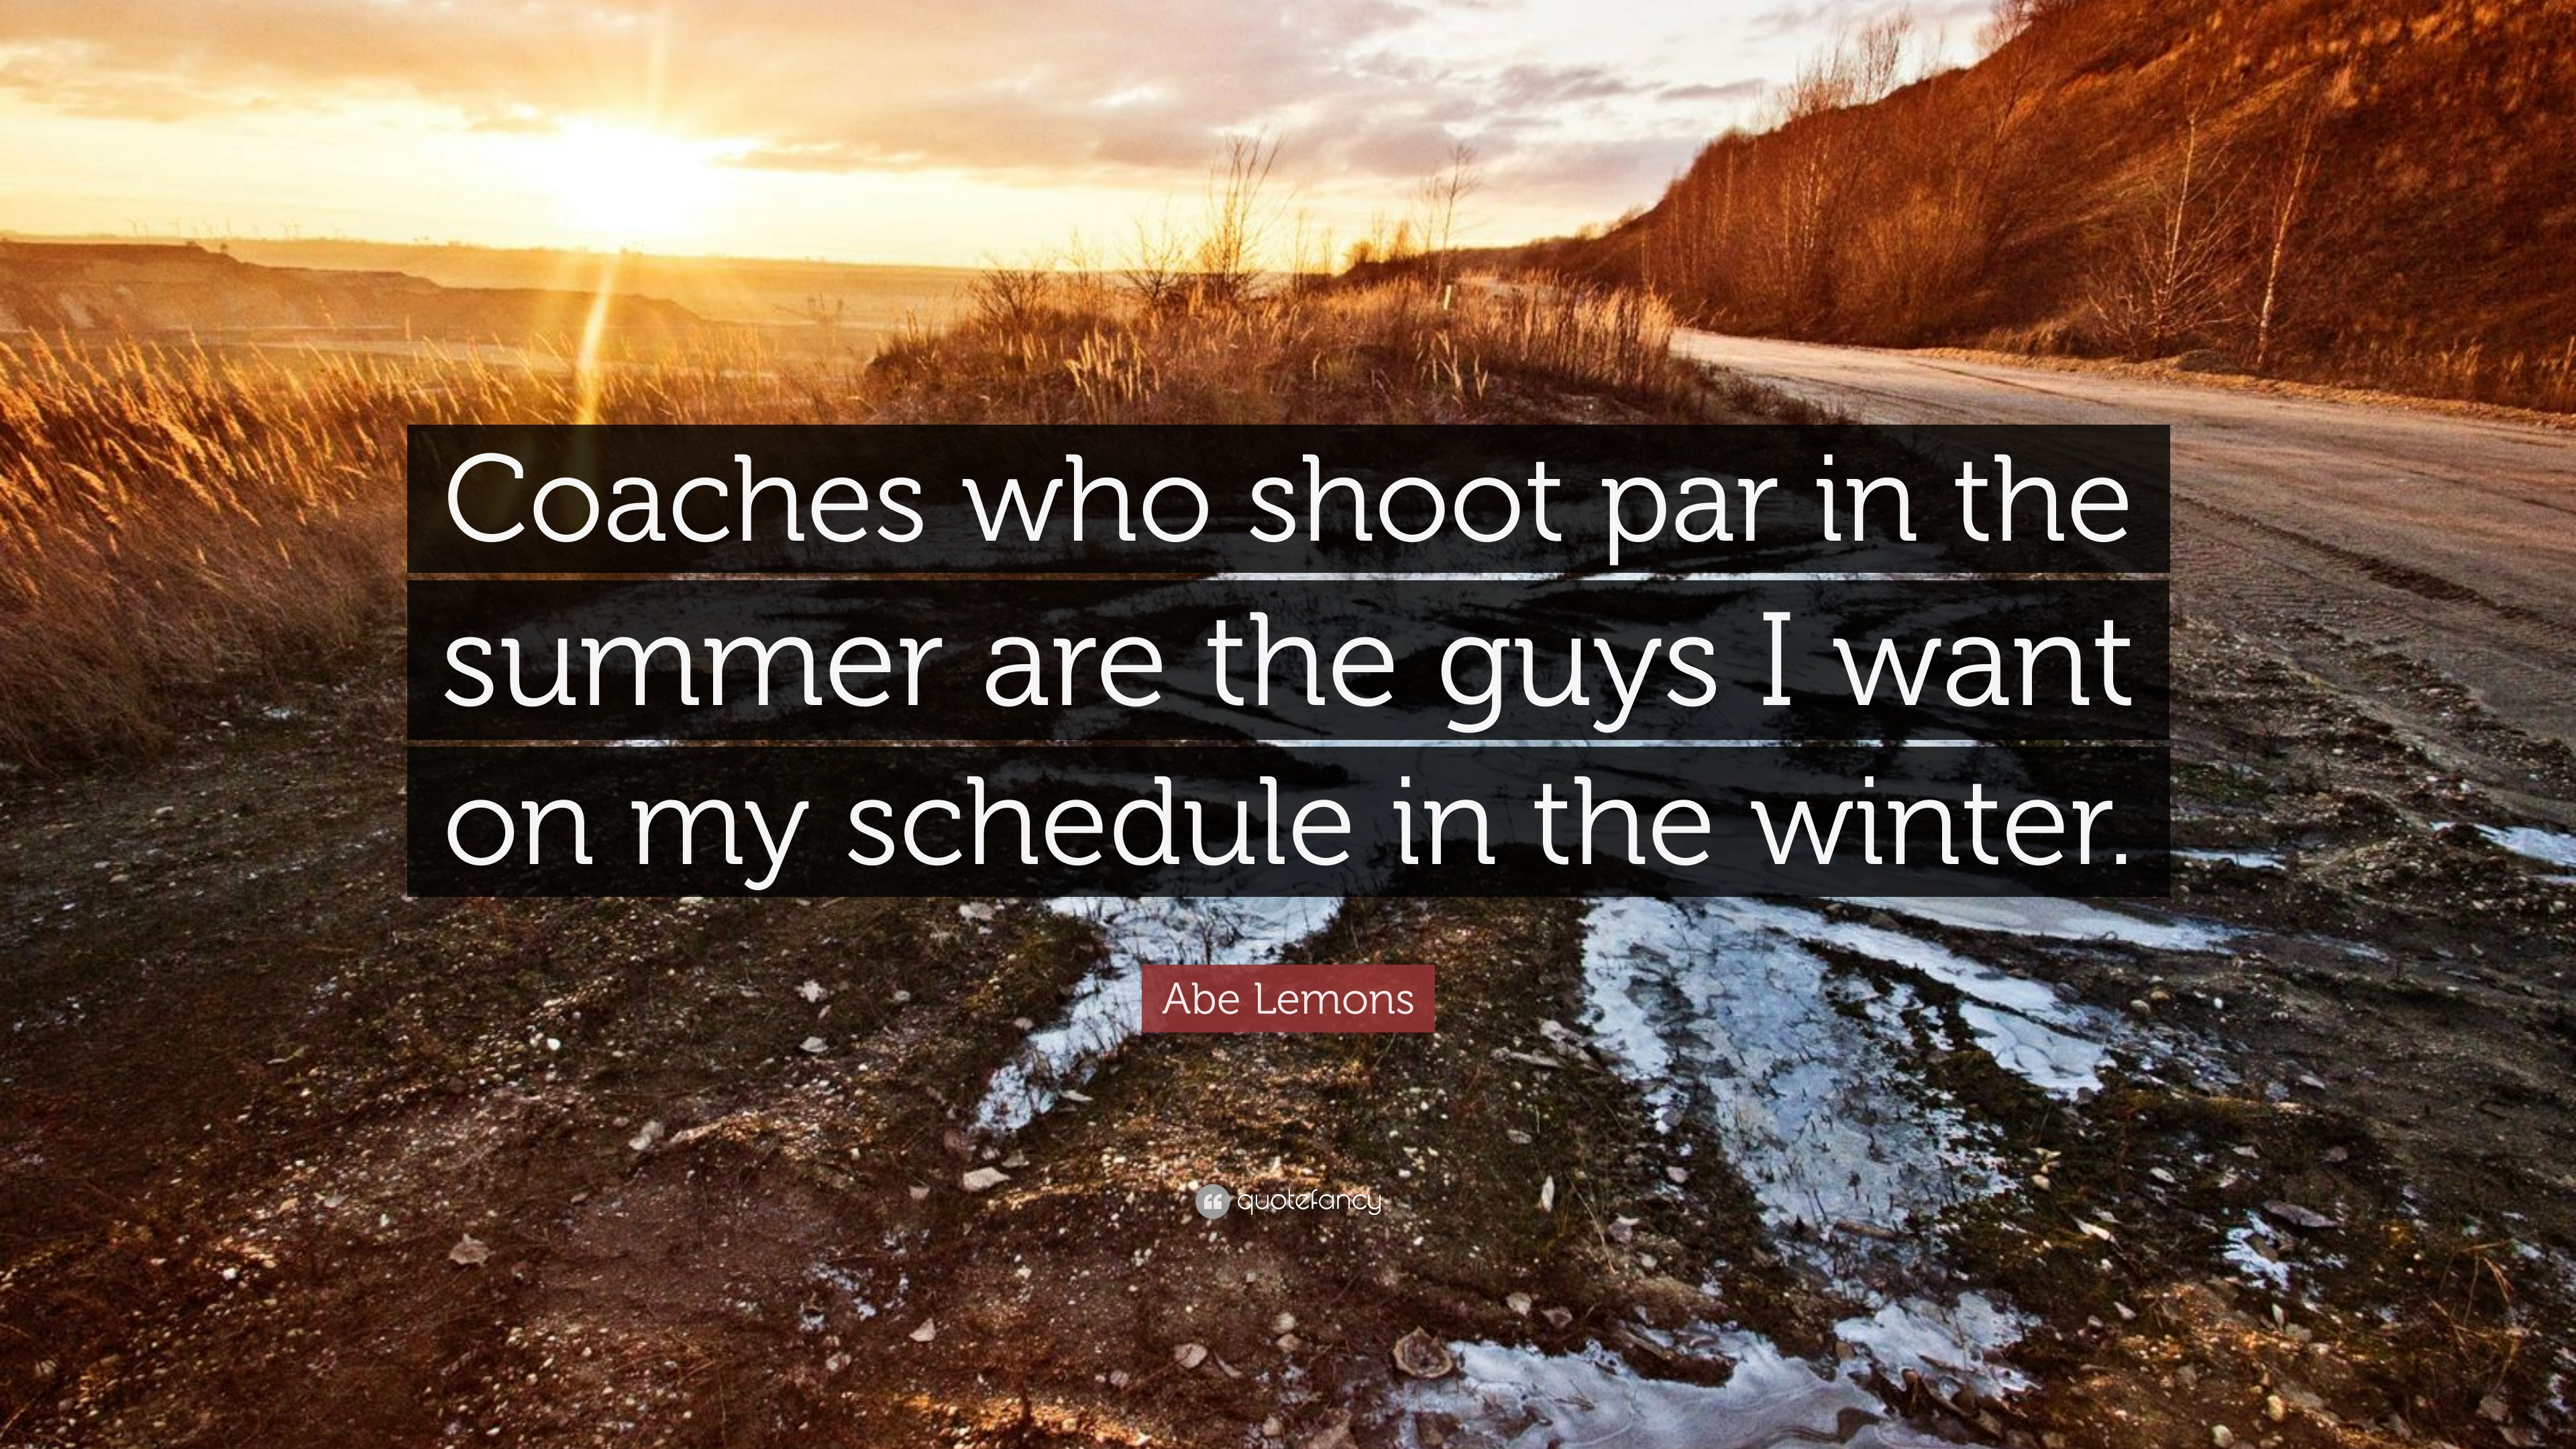 Ordinaire Abe Lemons Quote: U201cCoaches Who Shoot Par In The Summer Are The Guys I